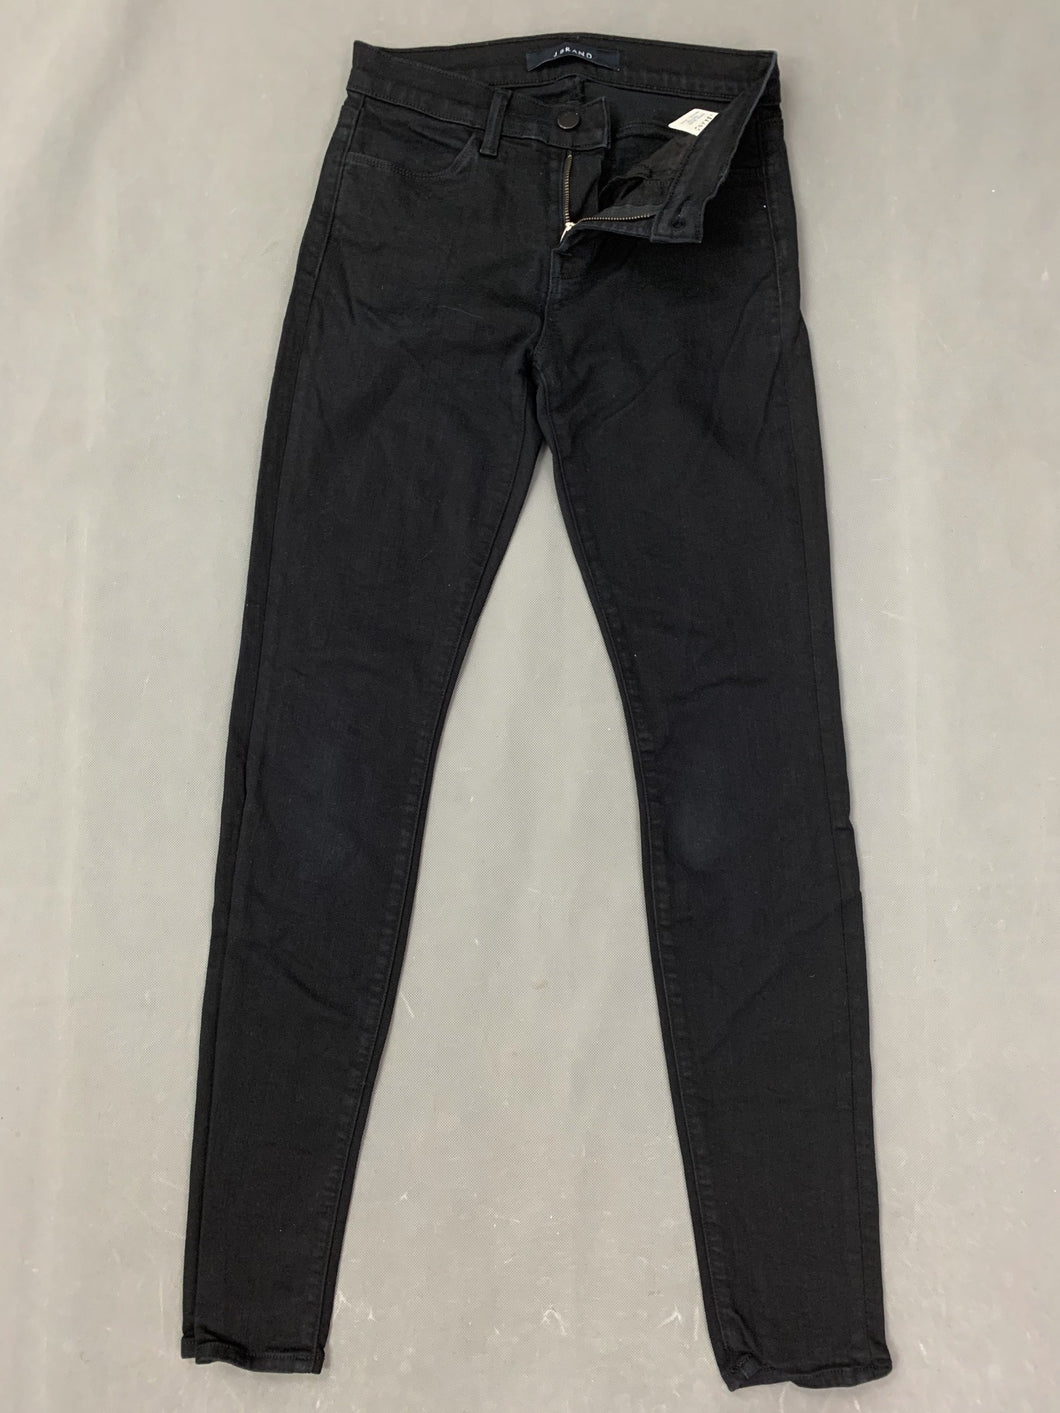 J BRAND Ladies Seriously Black SUPER SKINNY JEANS Size Waist 26